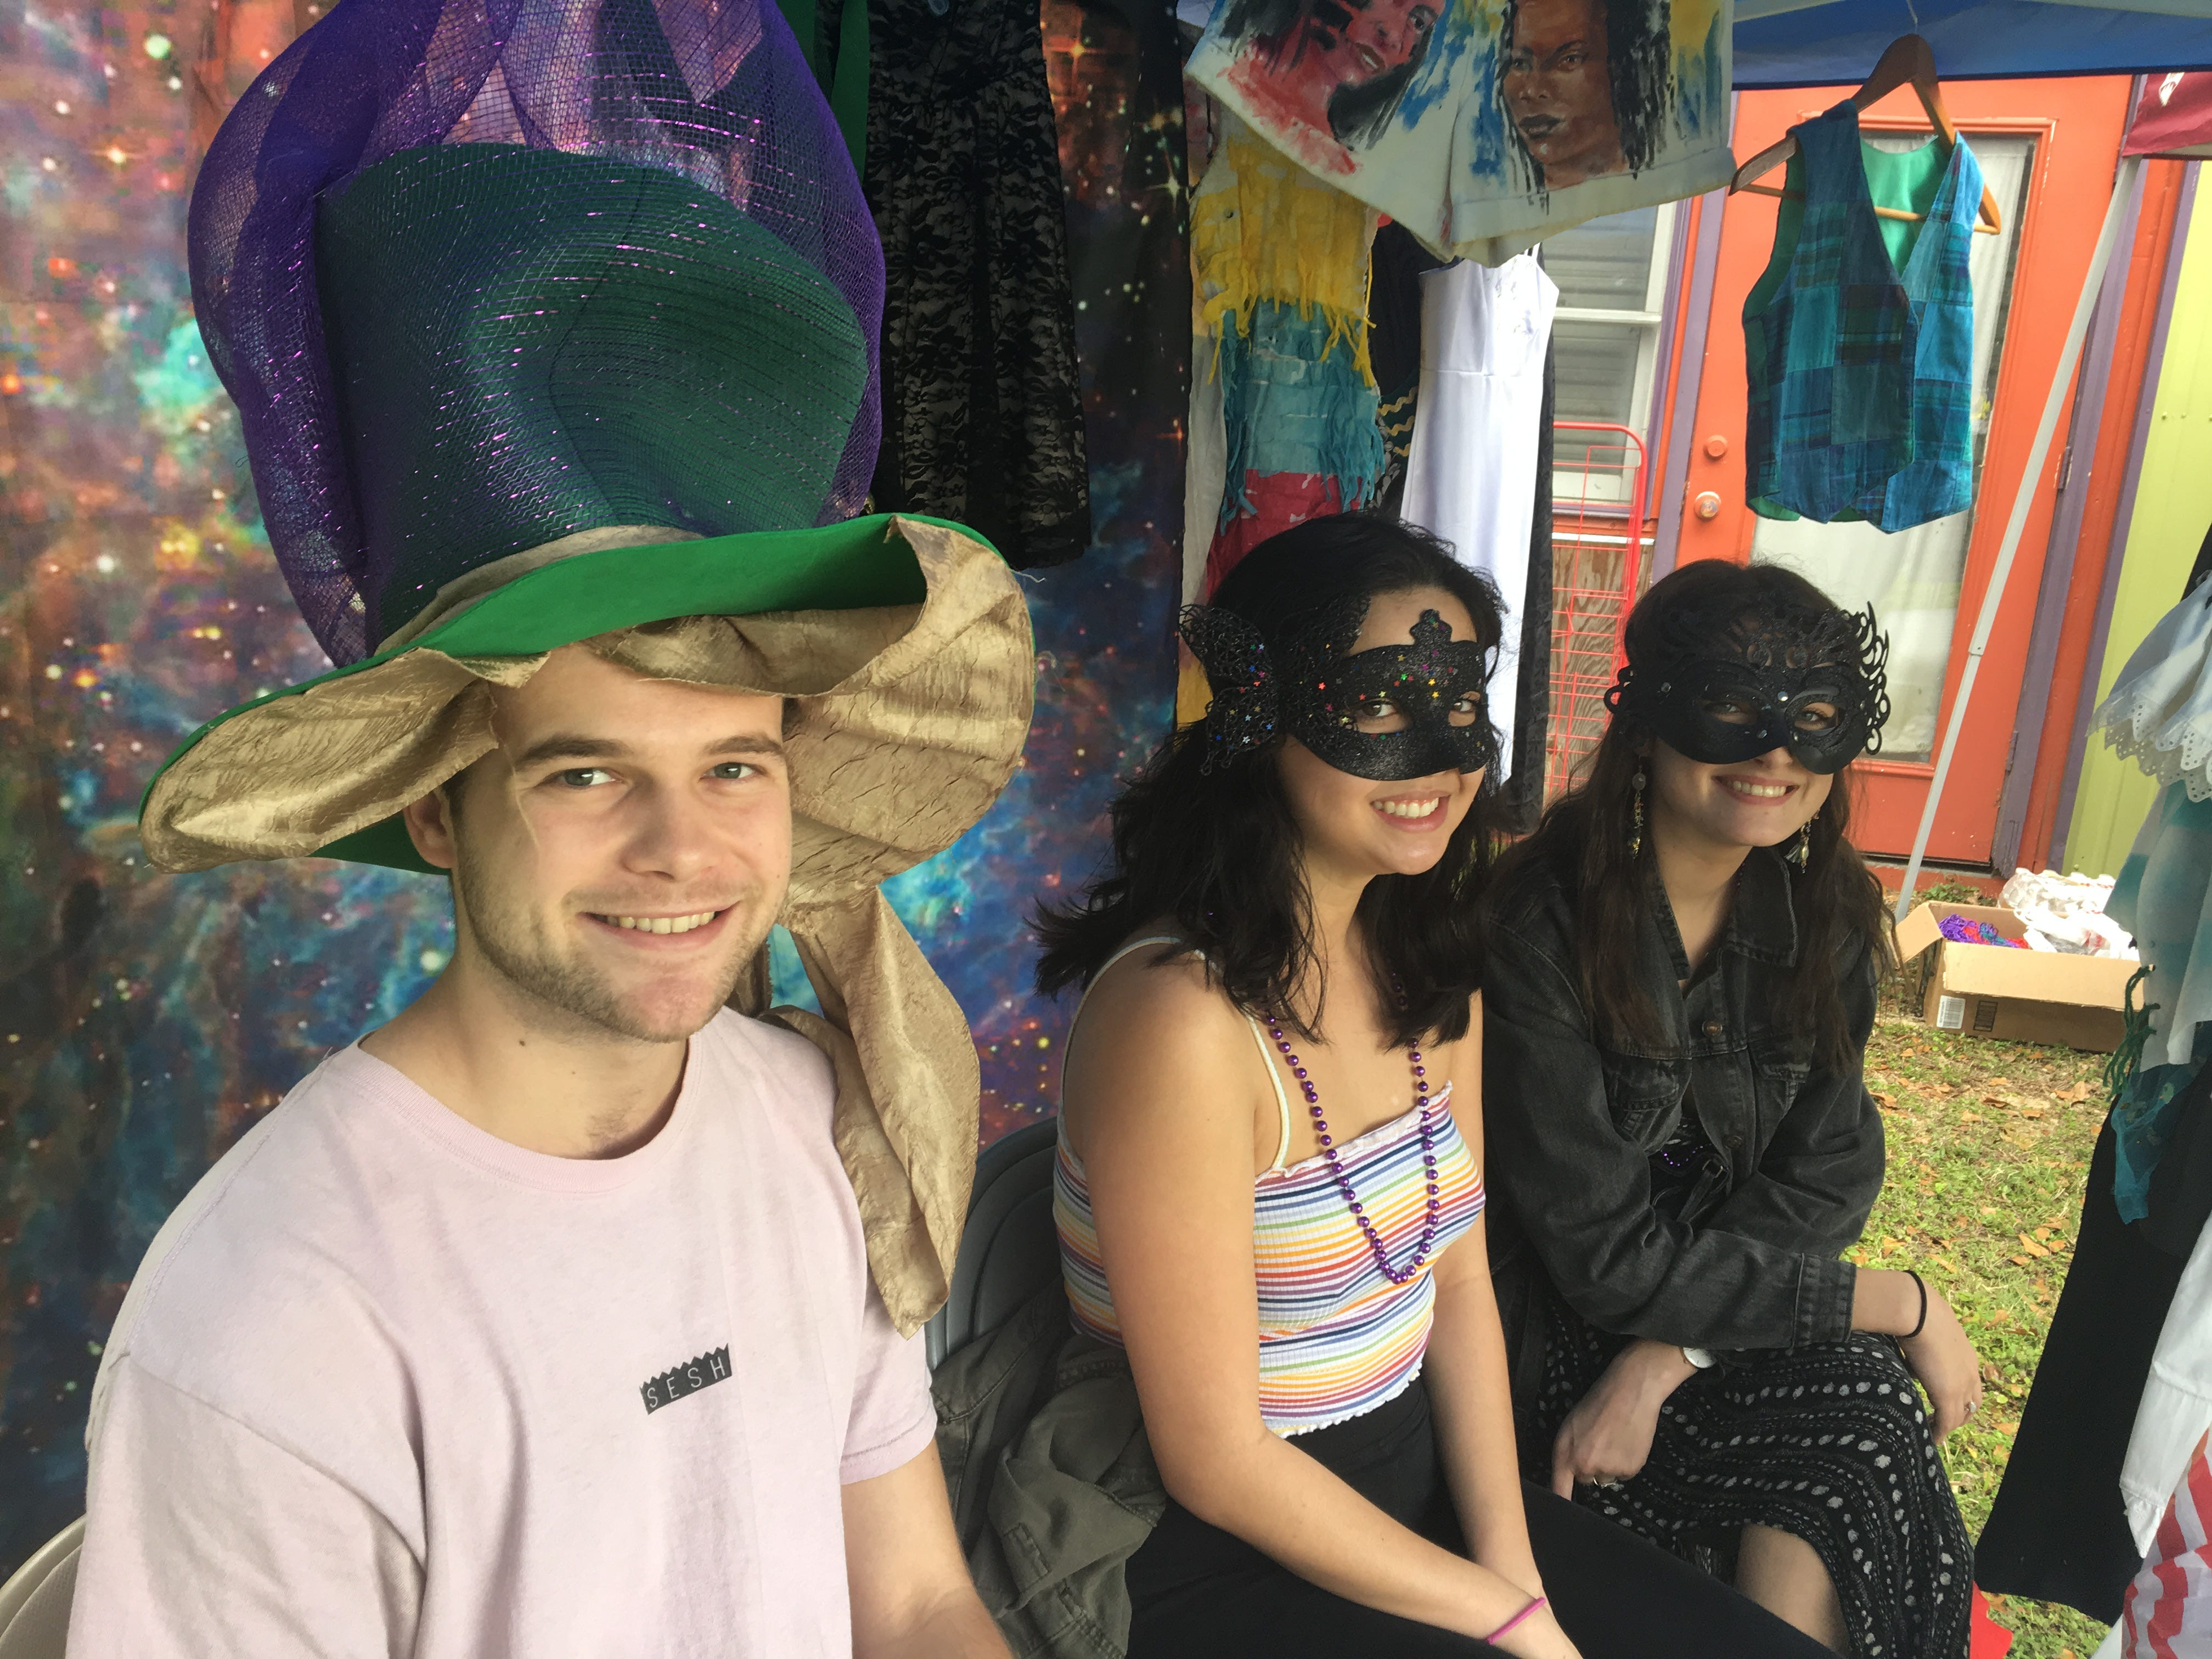 Harry James, 21, Amanda Caplan, 21, and Apolline Demiraj, 20, pose for a photo at ArtiGras 2019's costume booth.